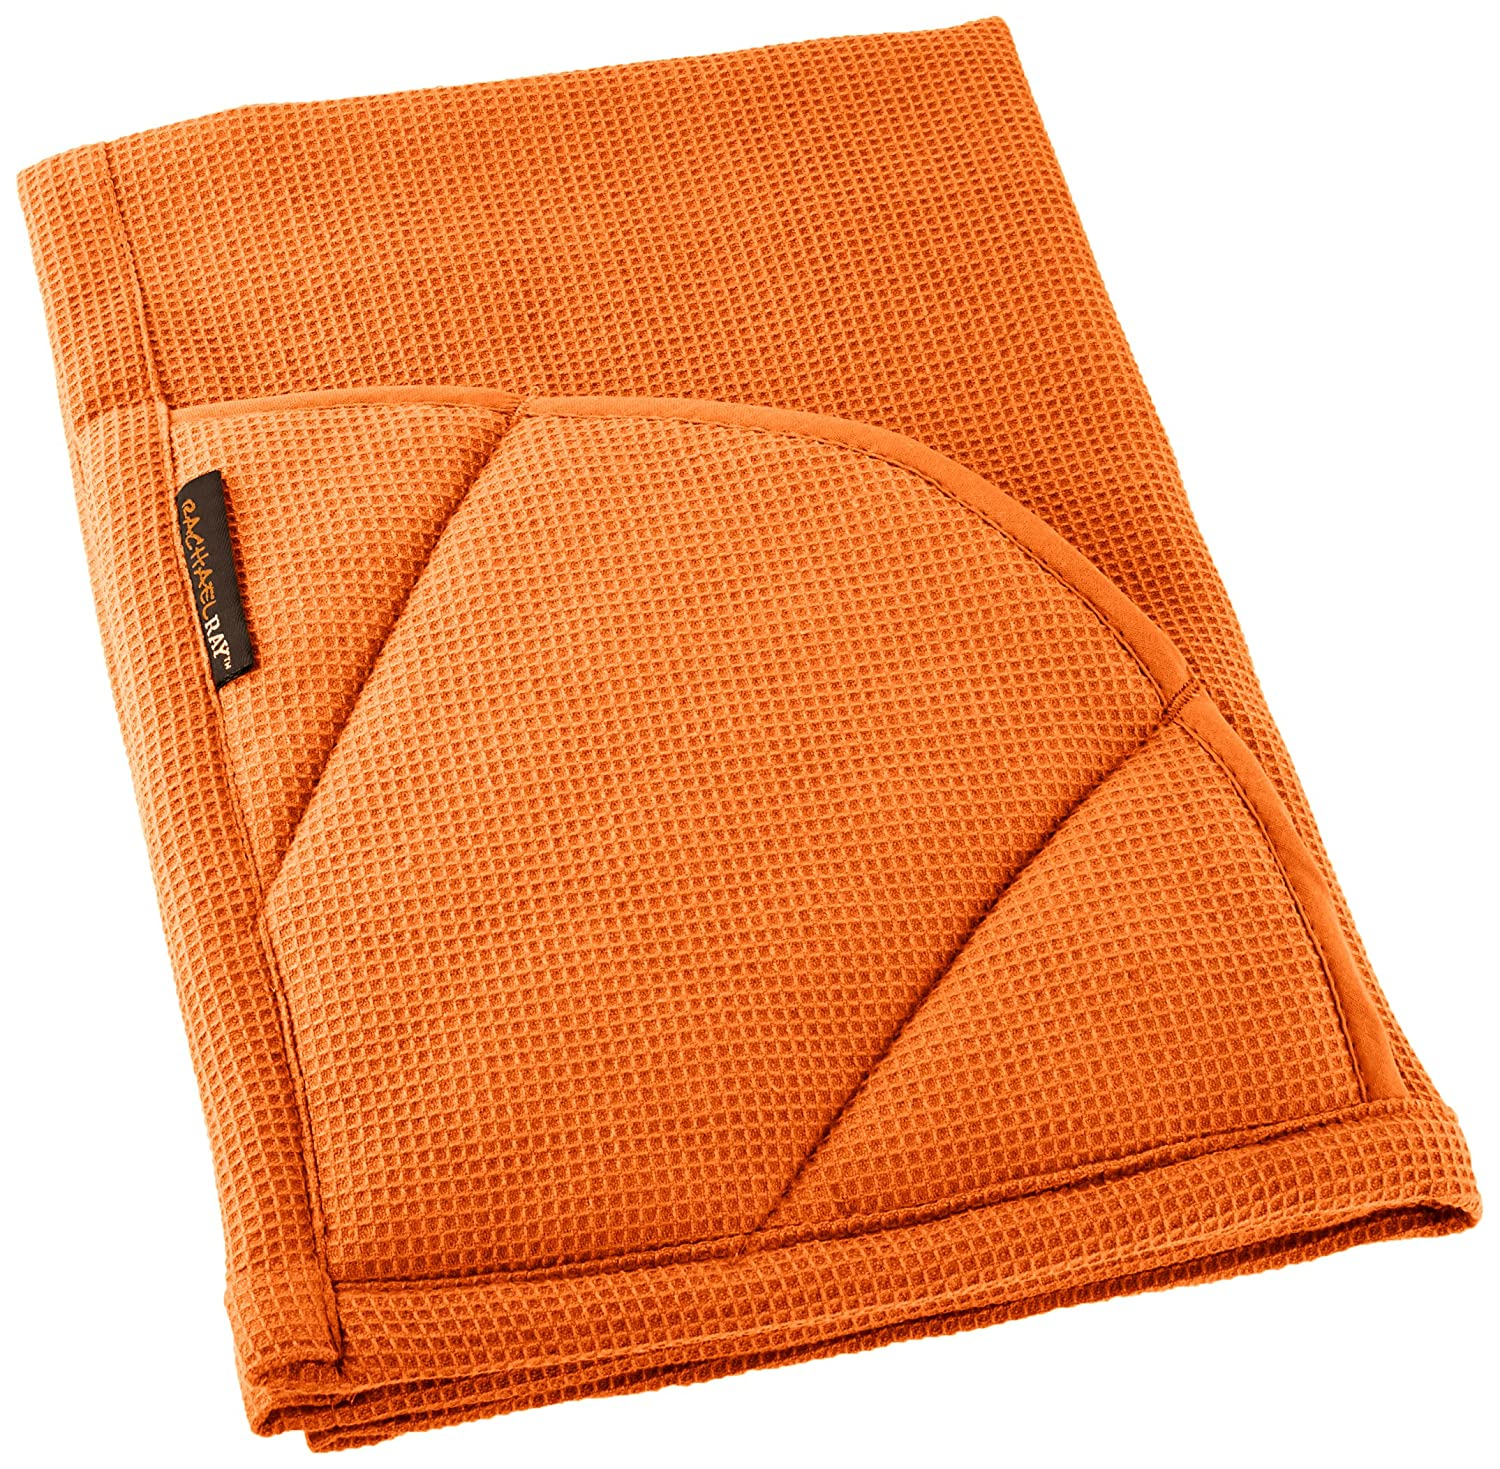 Rachael Ray Kitchen Towel and Oven Glove Moppine – A 2-in-1 Ultra Absorbent Kitchen Towel with Heat Resistant Pot-Holder Padded Pockets to Handle Hot Cookware and Bakeware,Burnt Orange